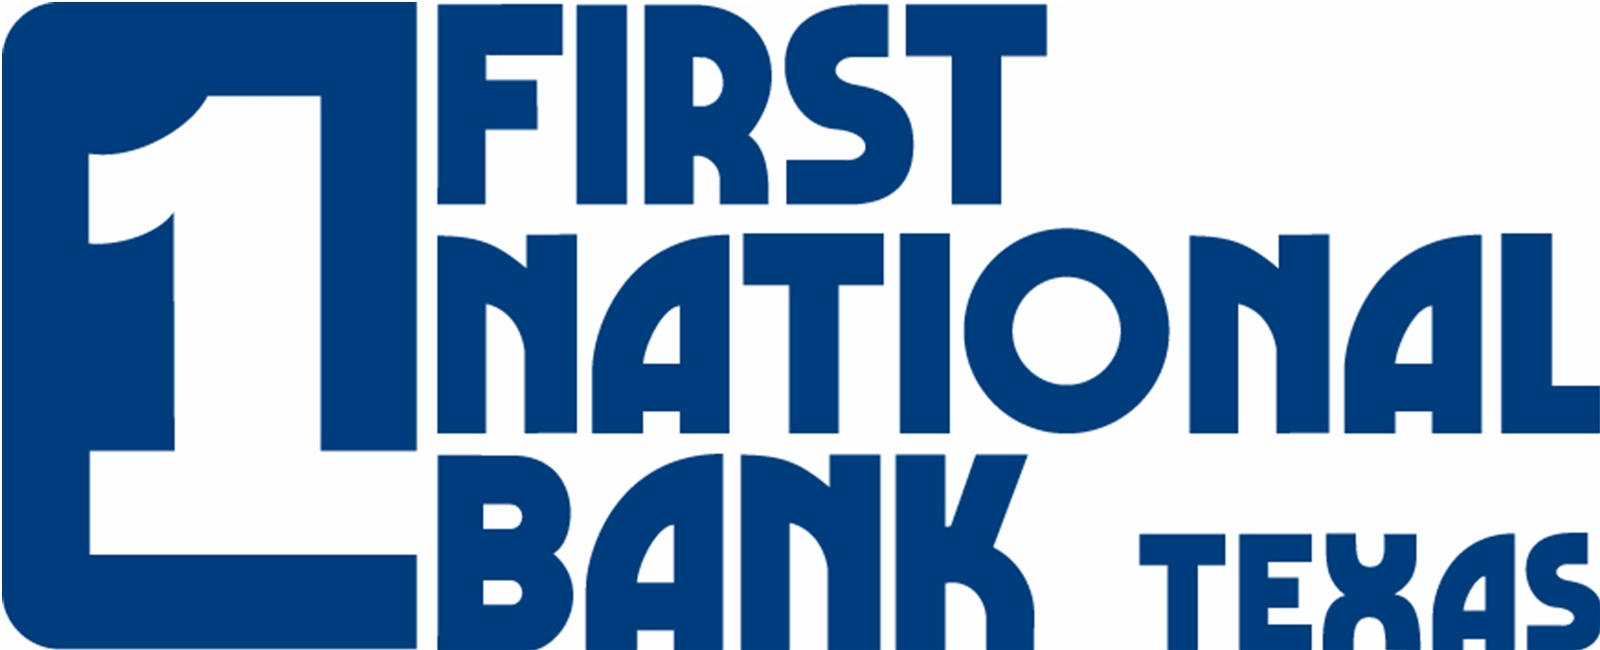 First National Bank Personal Banking